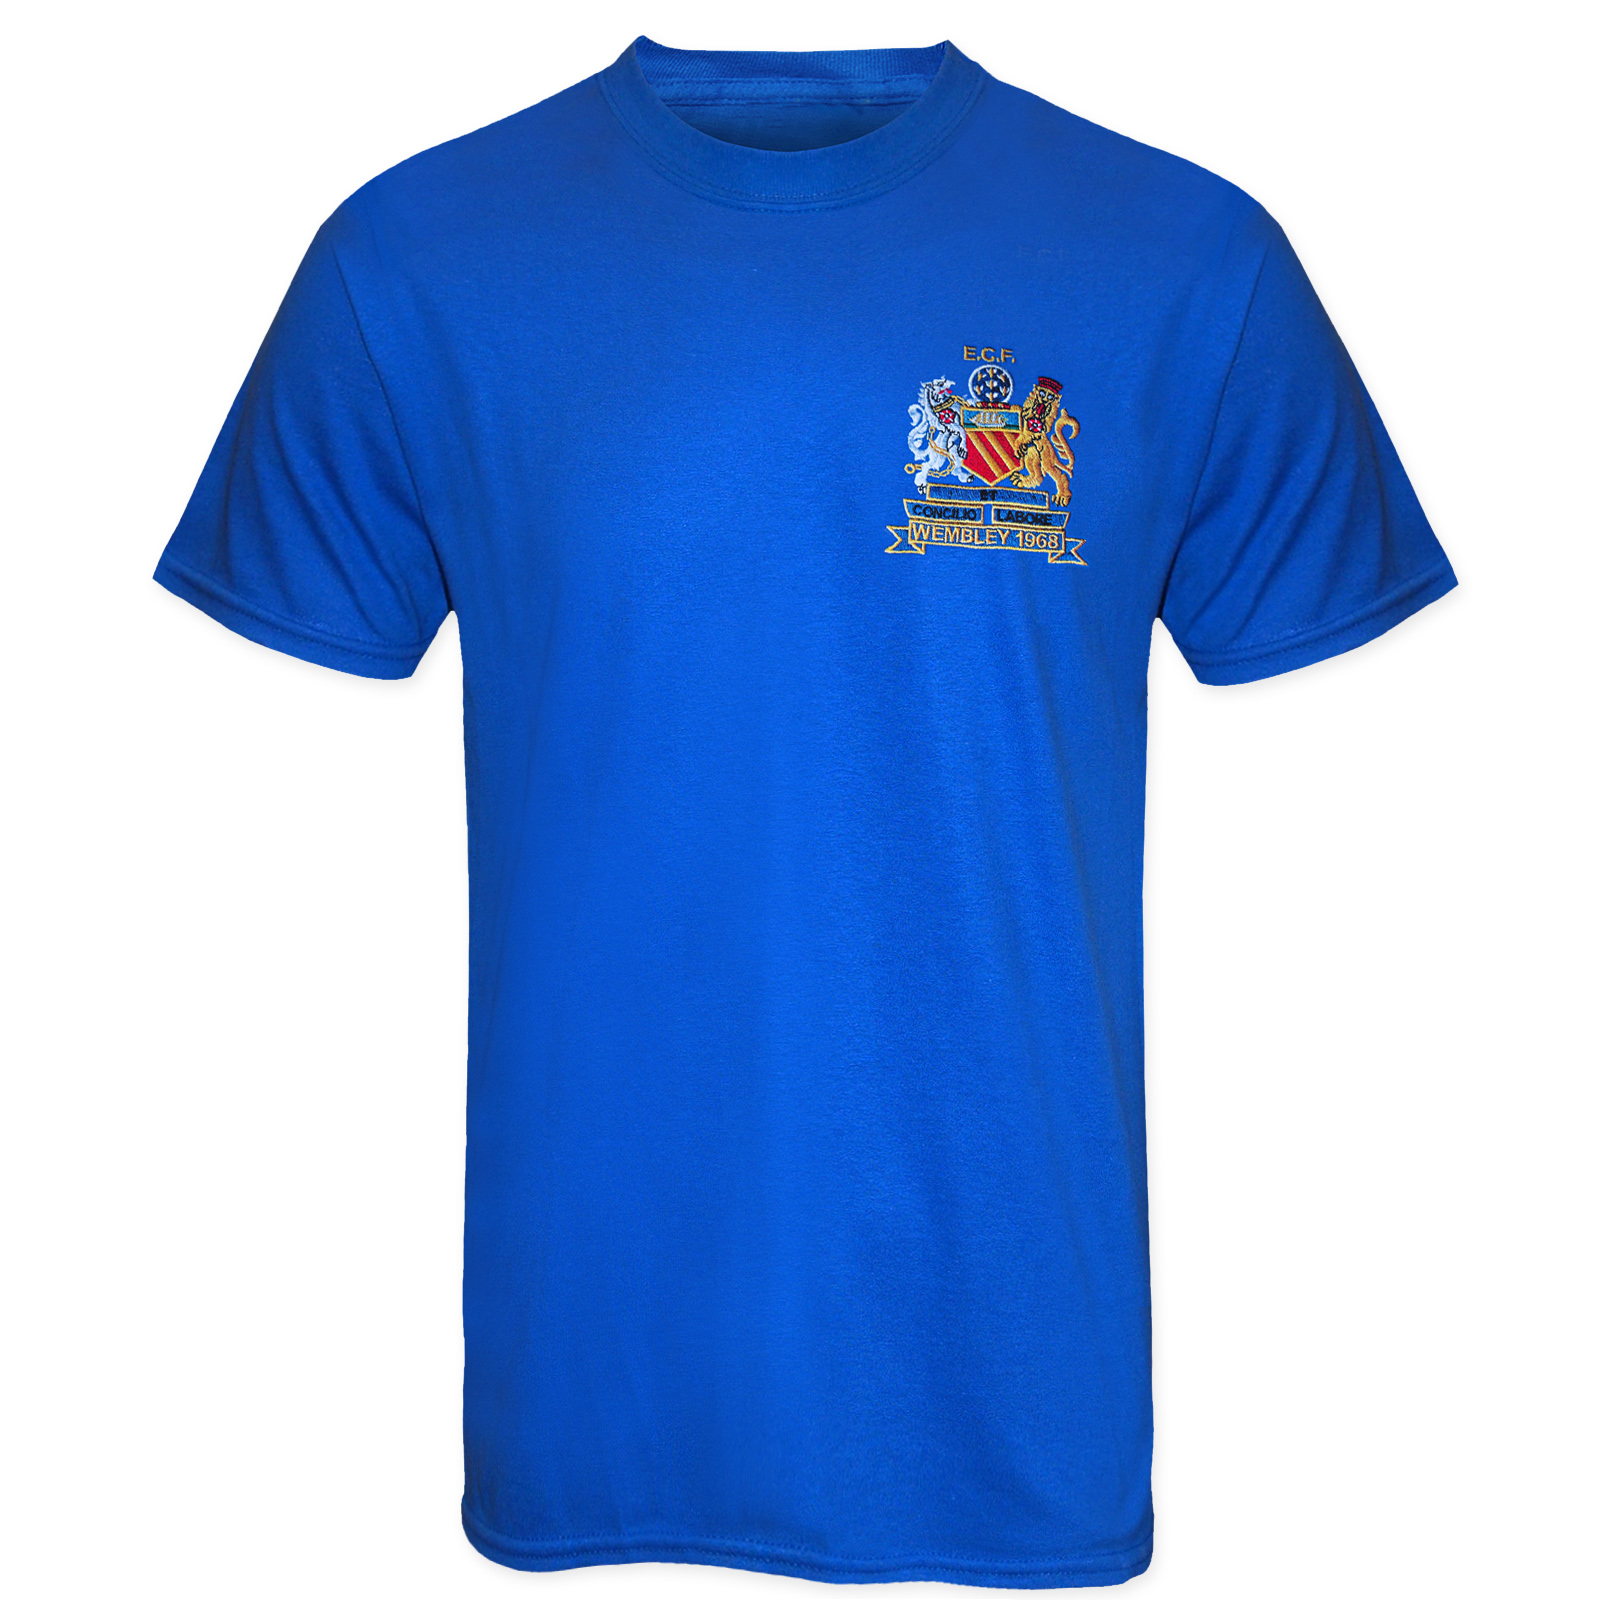 buy online 06a28 a2ab7 Details about Football Legends Best & Charlton in Manchester United 1968  Retro Kit T-Shirt